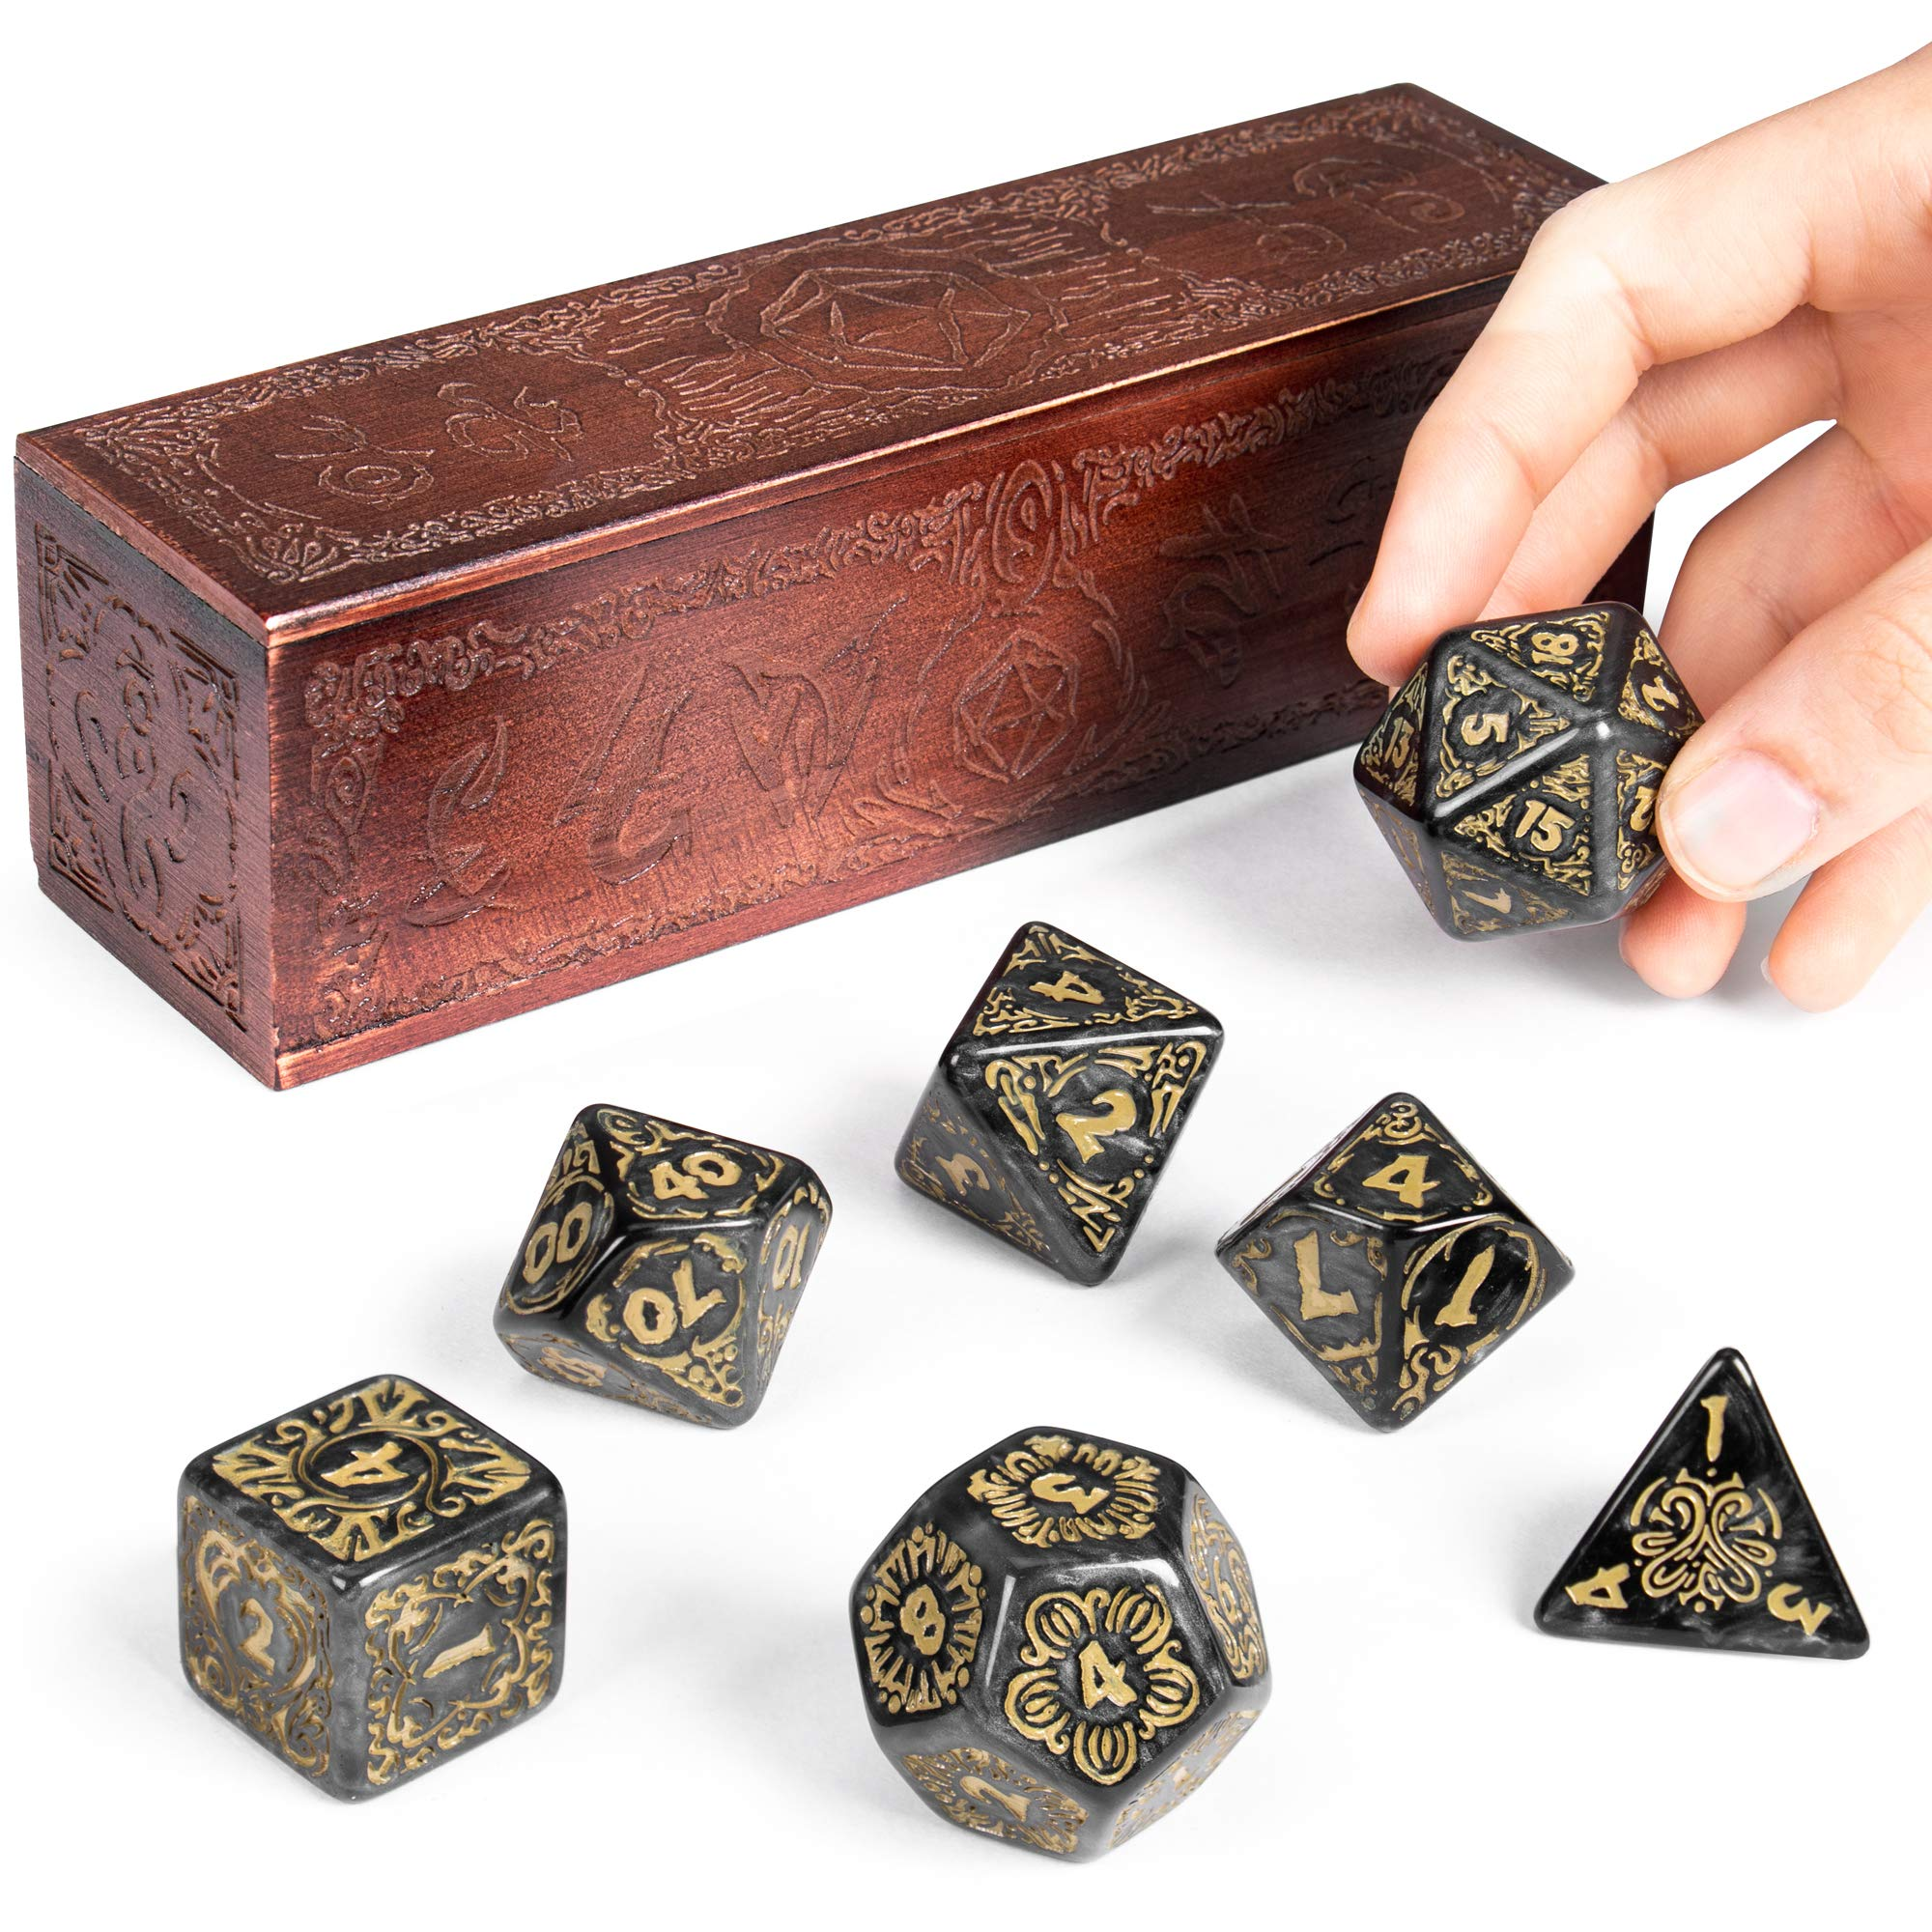 Amazon Com Titan Dice Nyx 25mm Giant Polyhedral Dice 7 Piece Set Engraved Wooden Display Box Smoke Color With Gold Numbers Tabletop Roleplaying Fantasy Rpg Gaming Novelty Accessories Toys Games